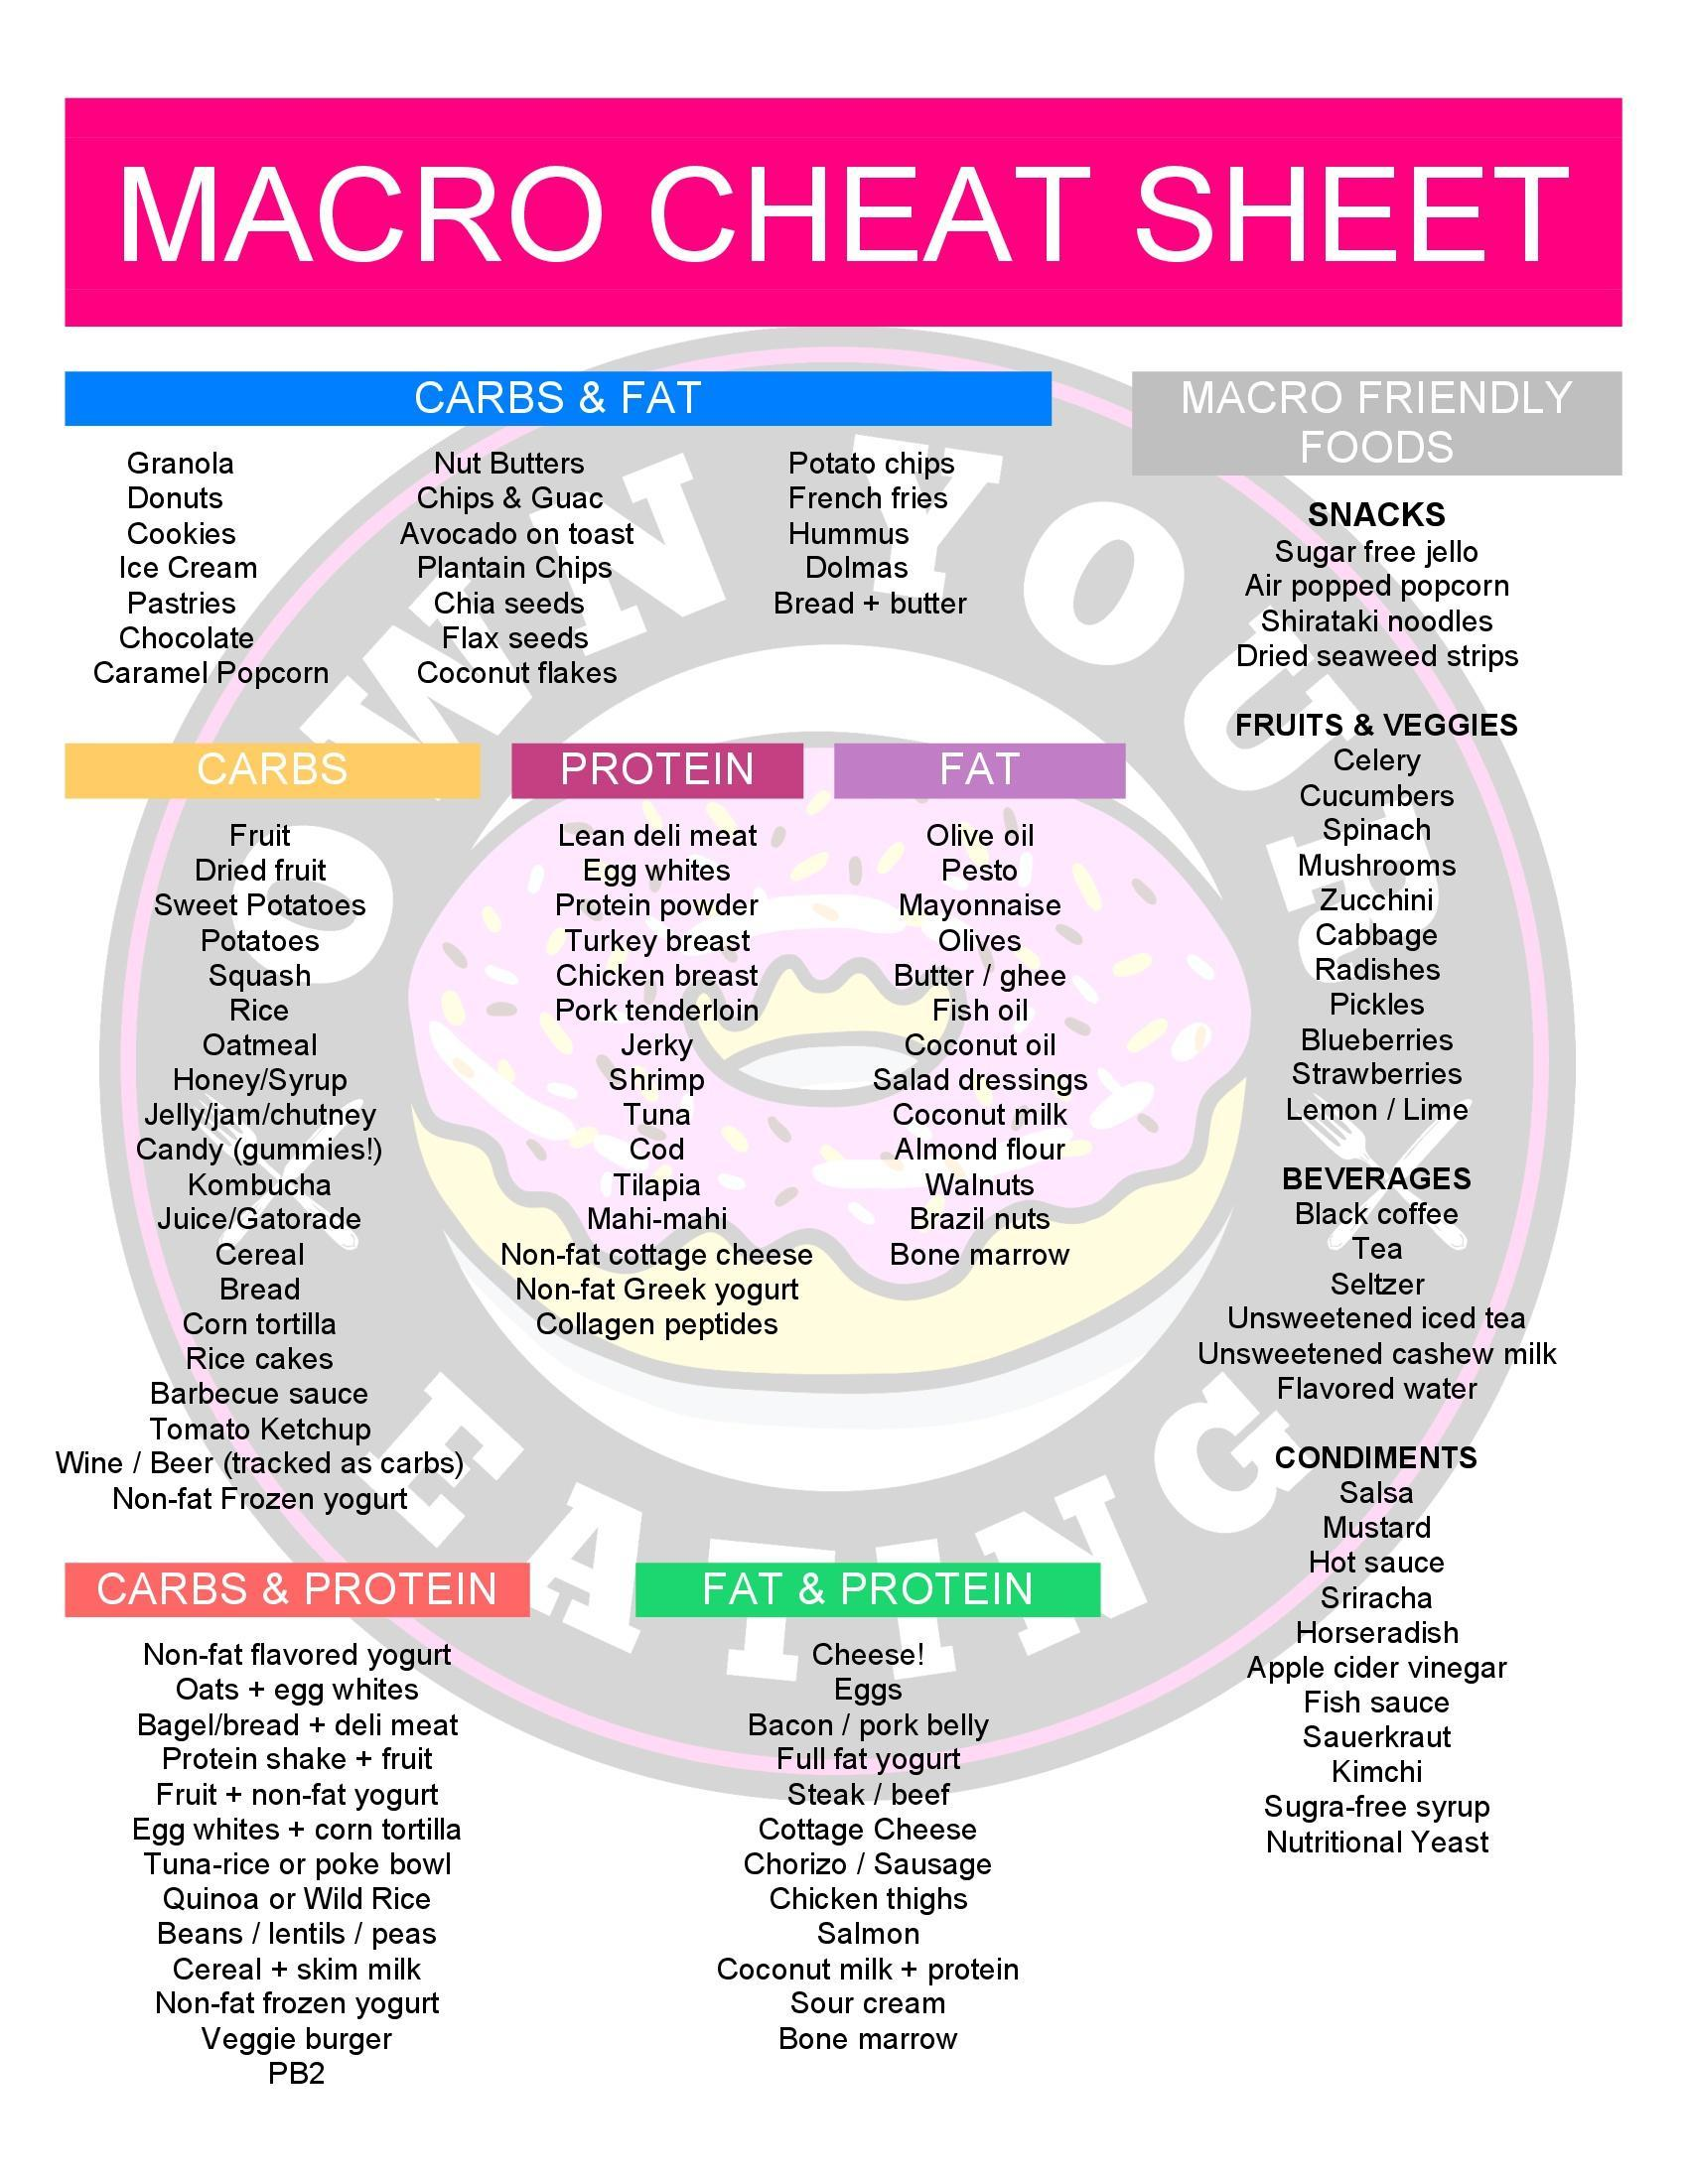 Prescription weight loss products